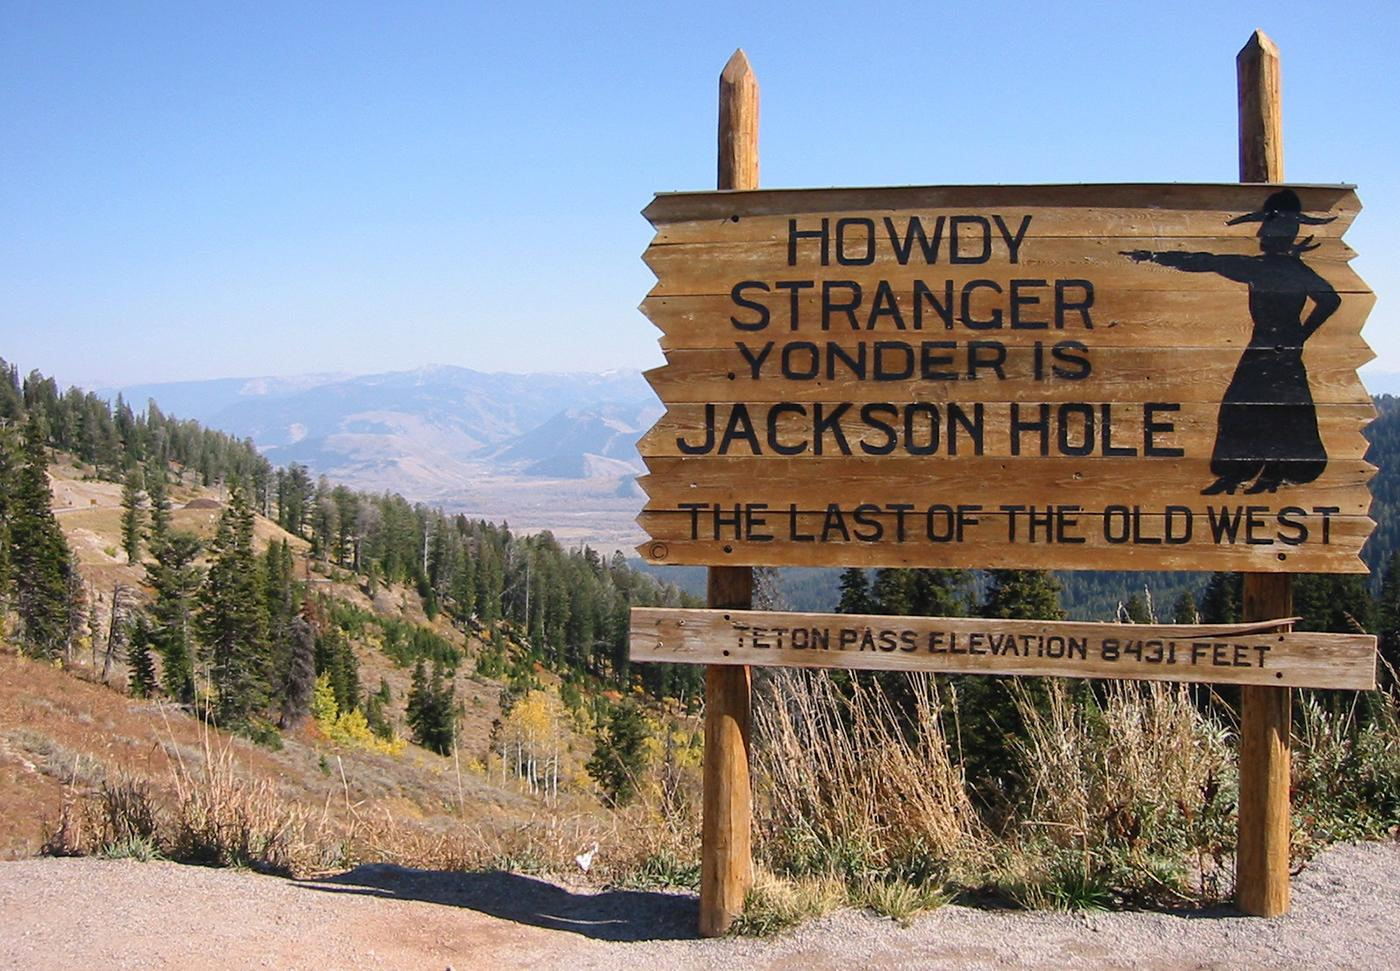 A town founded on cattle ranching, Jackson Hole proudly maintains its pioneer roots